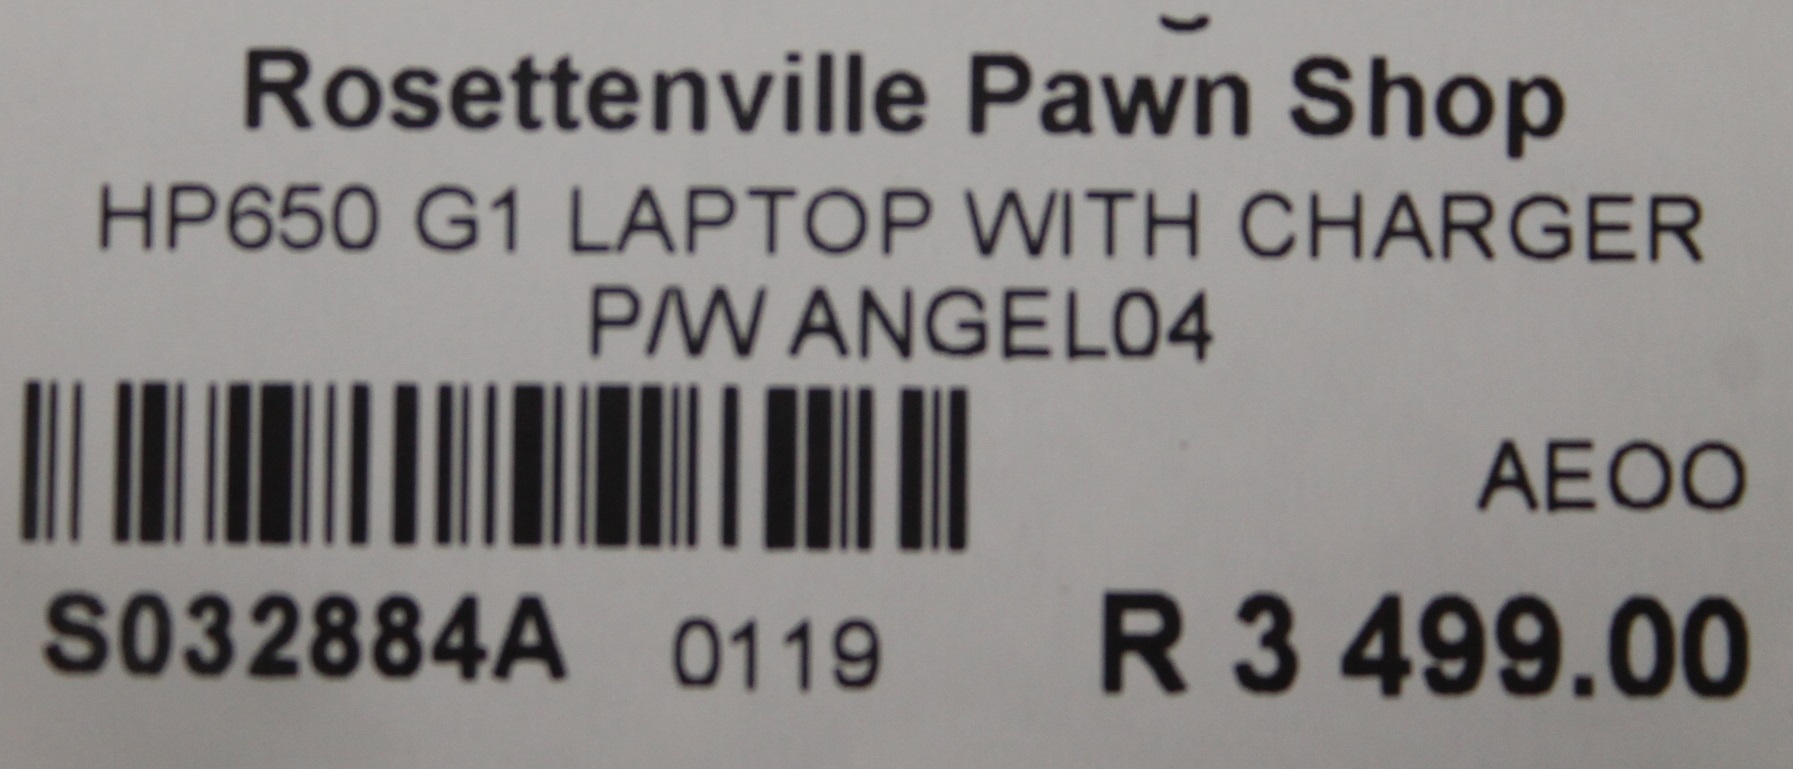 HP 650 G1 laptop with charger S032884A #Rosettenvillepawnshop